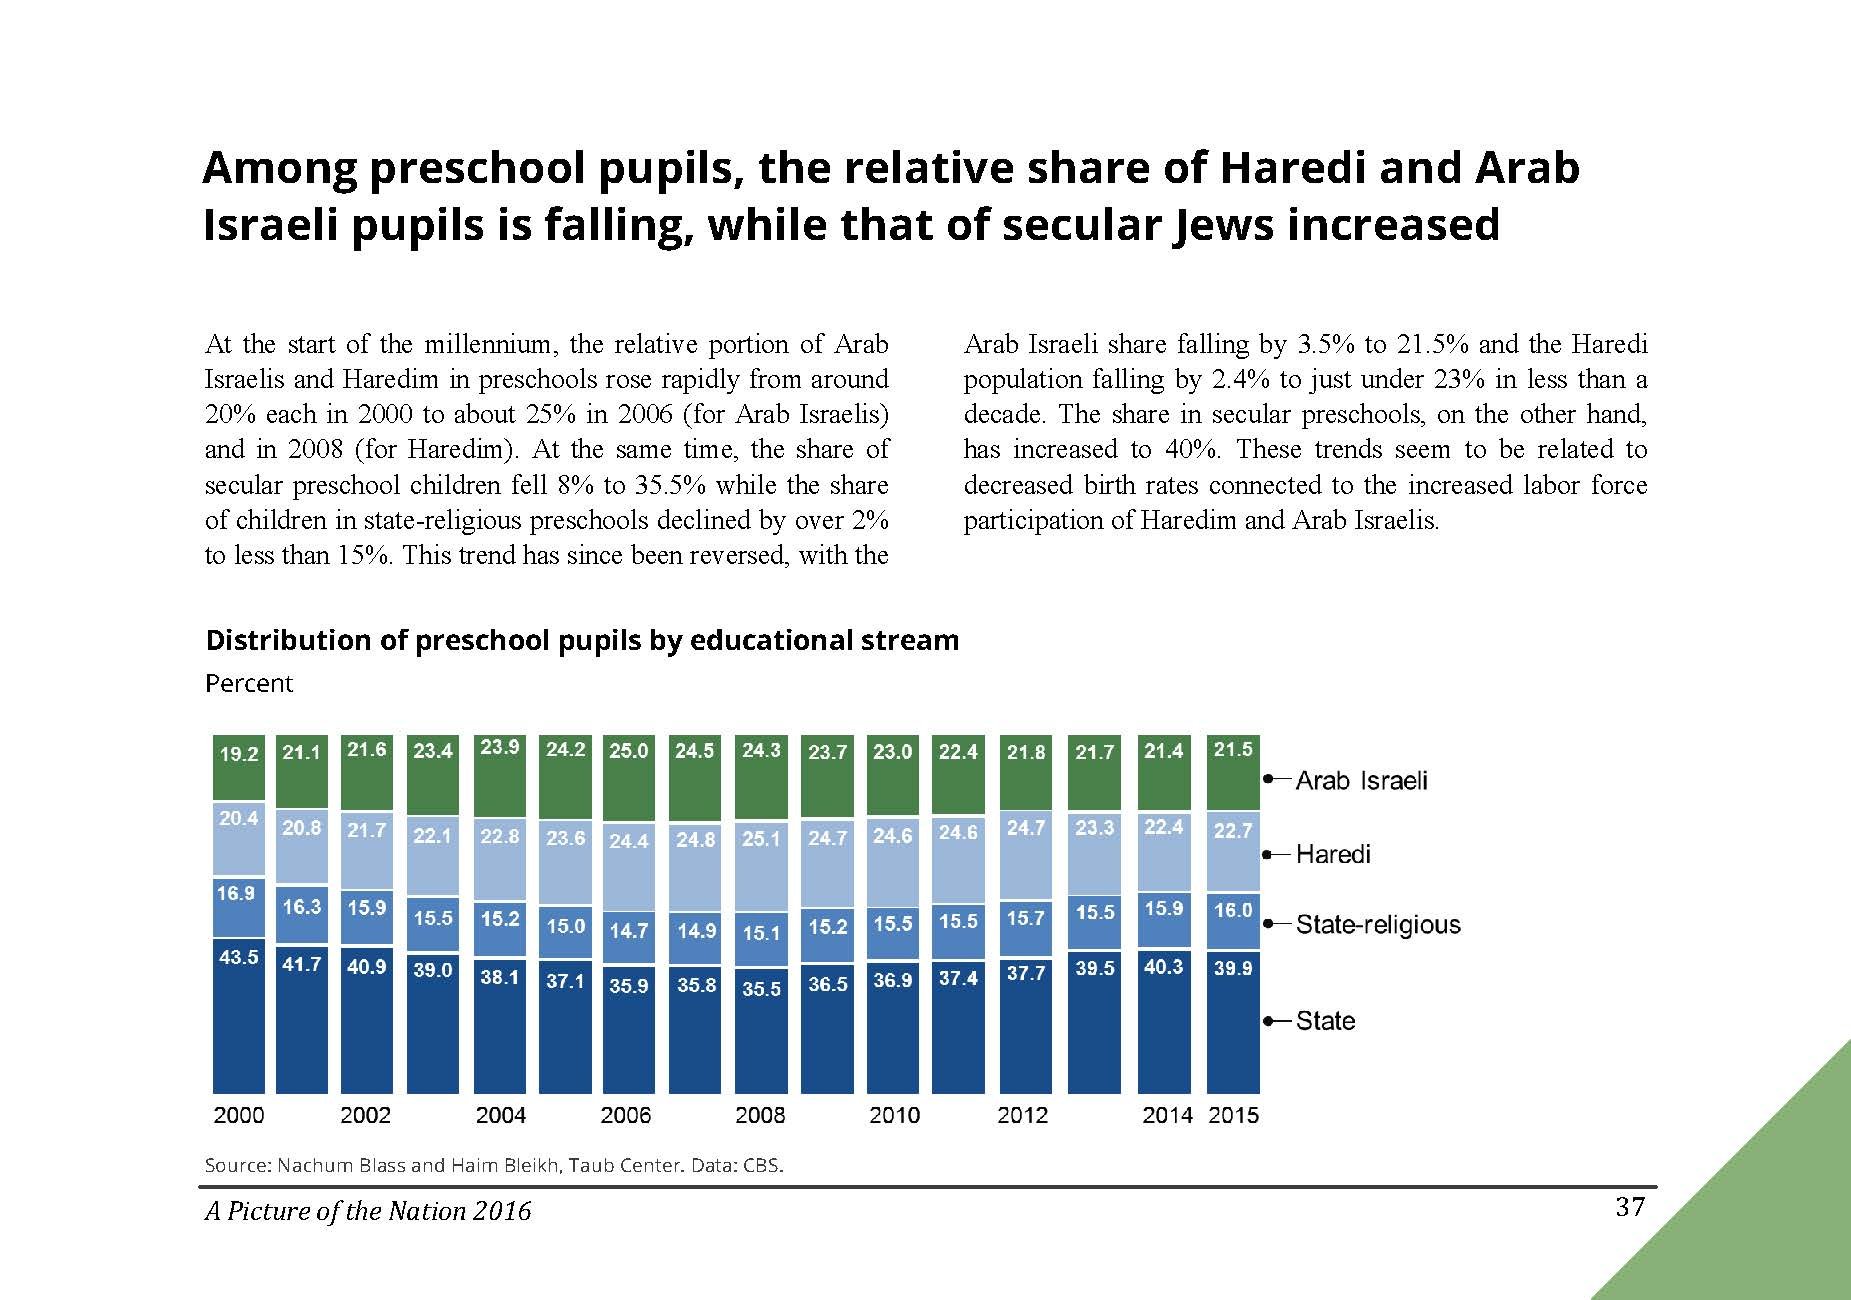 Among preschool pupils, the relative share of Haredi and Arab Israeli pupils is falling, while that of secular Jews increased